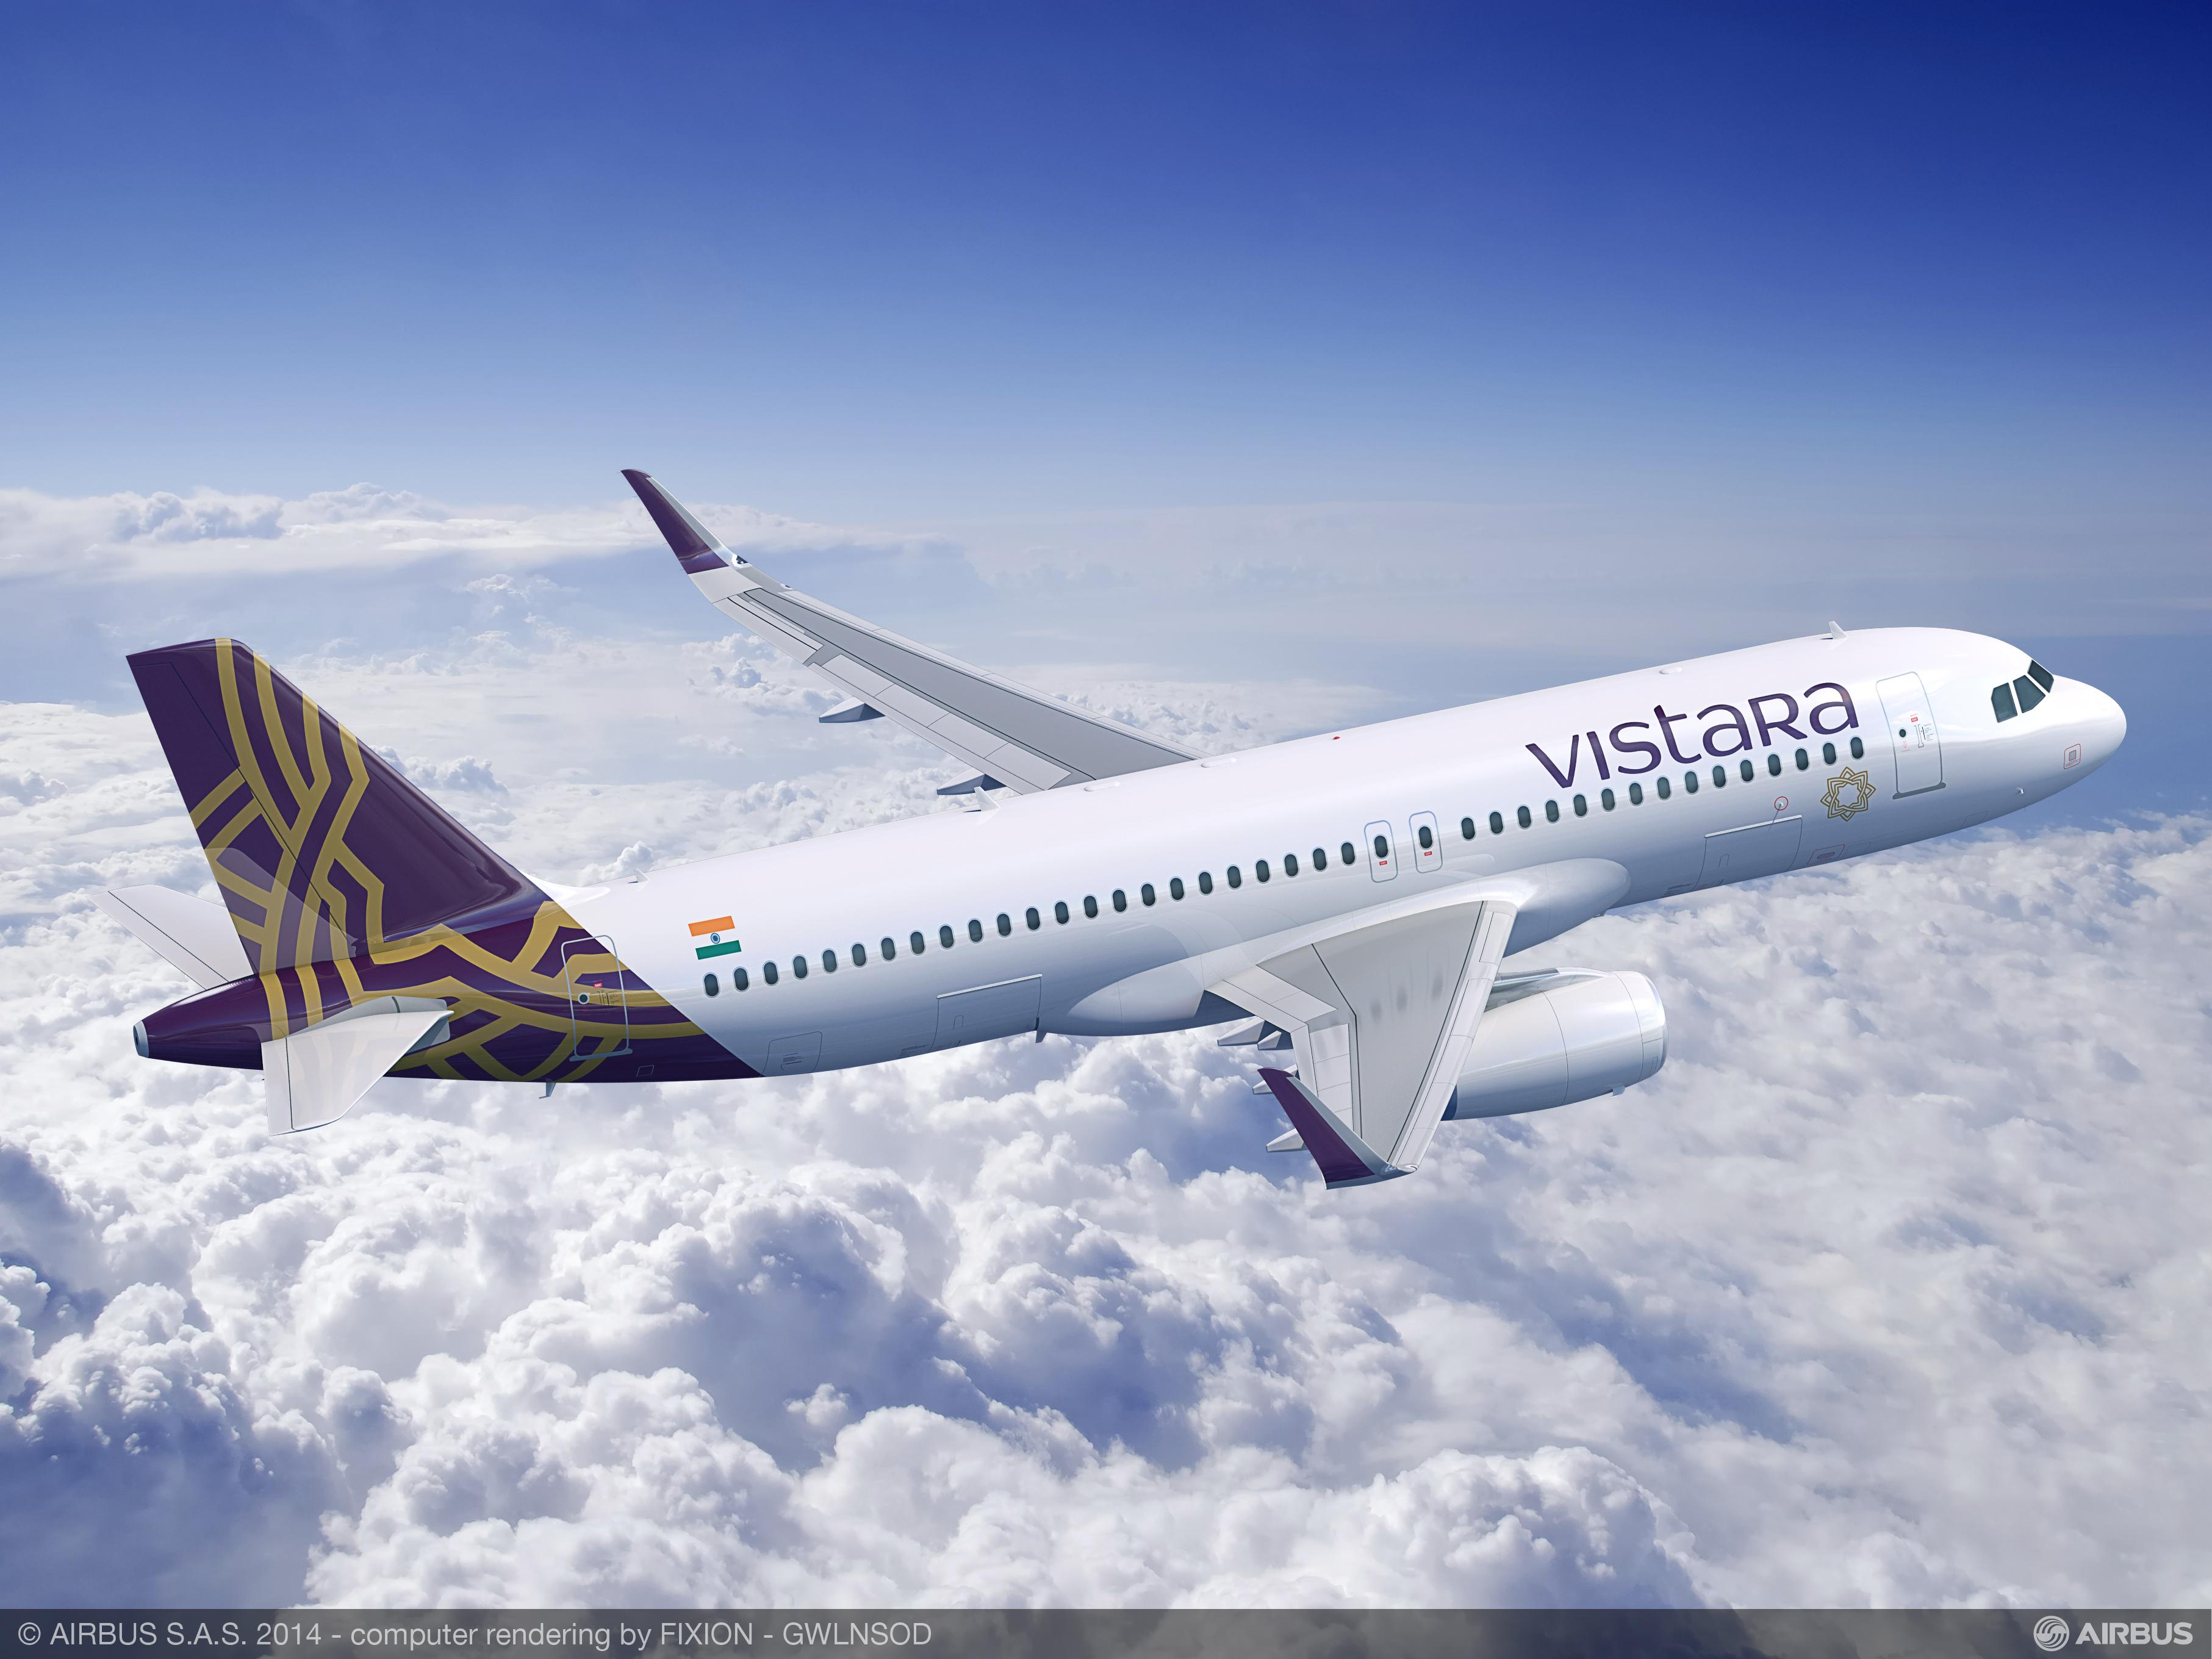 Next Year Calendar Sia : Sia invests over s million in vistara fii news